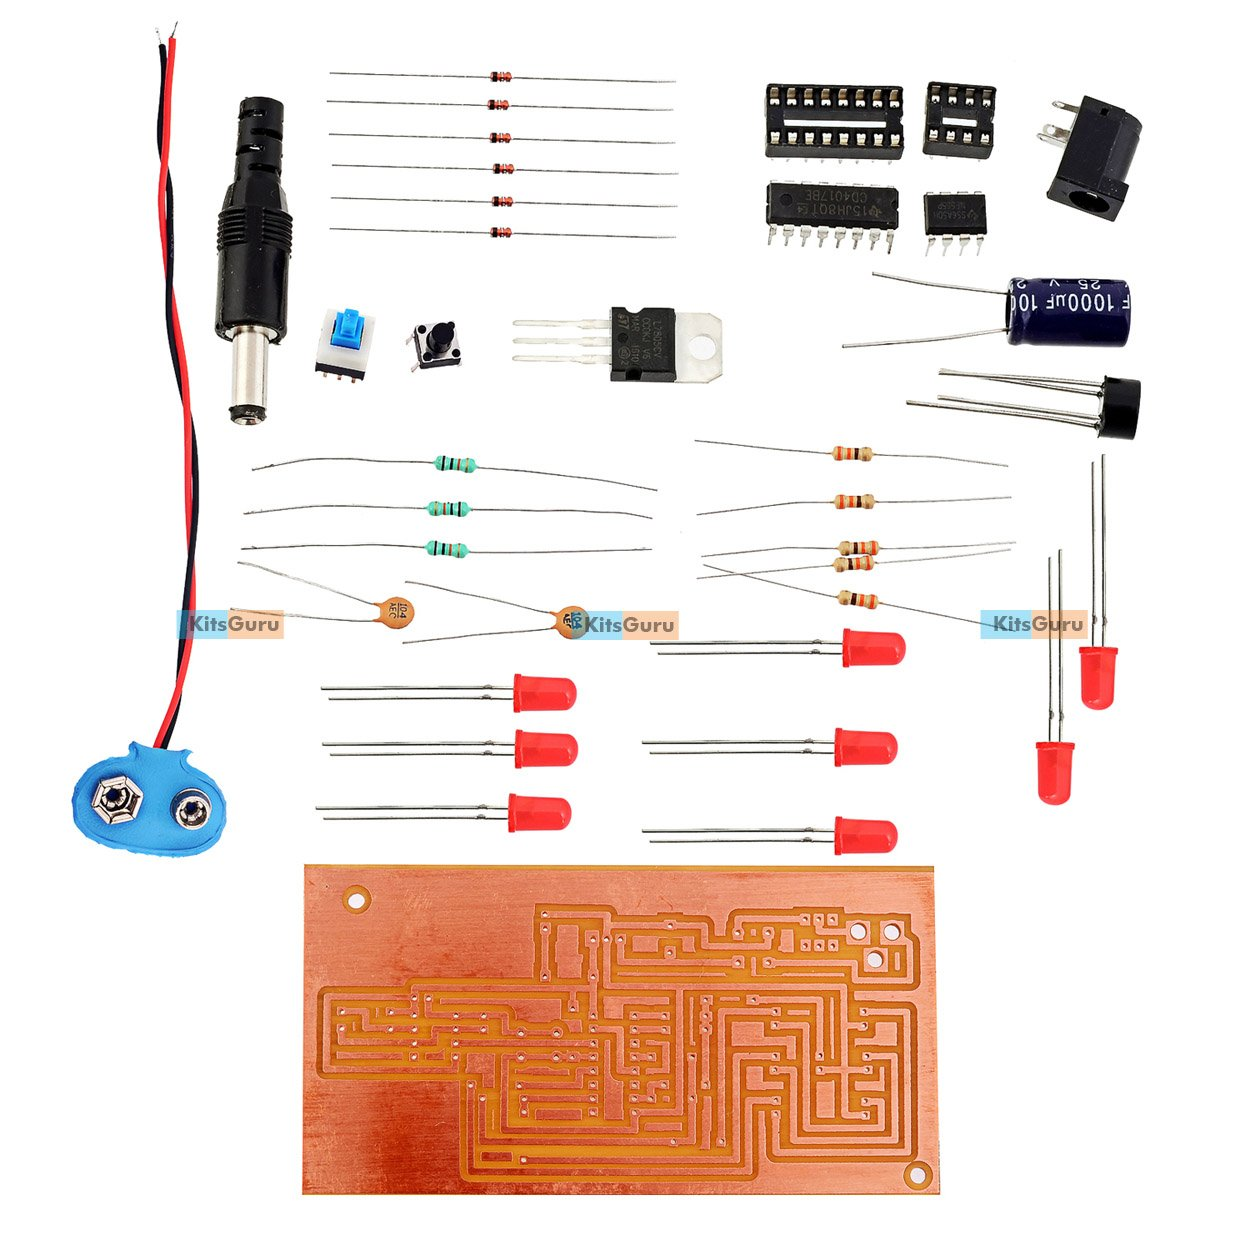 Diy Kit Electronic Dice Circuit Lgkt068 Simple Electronically Designed Game By Lm555 Projects